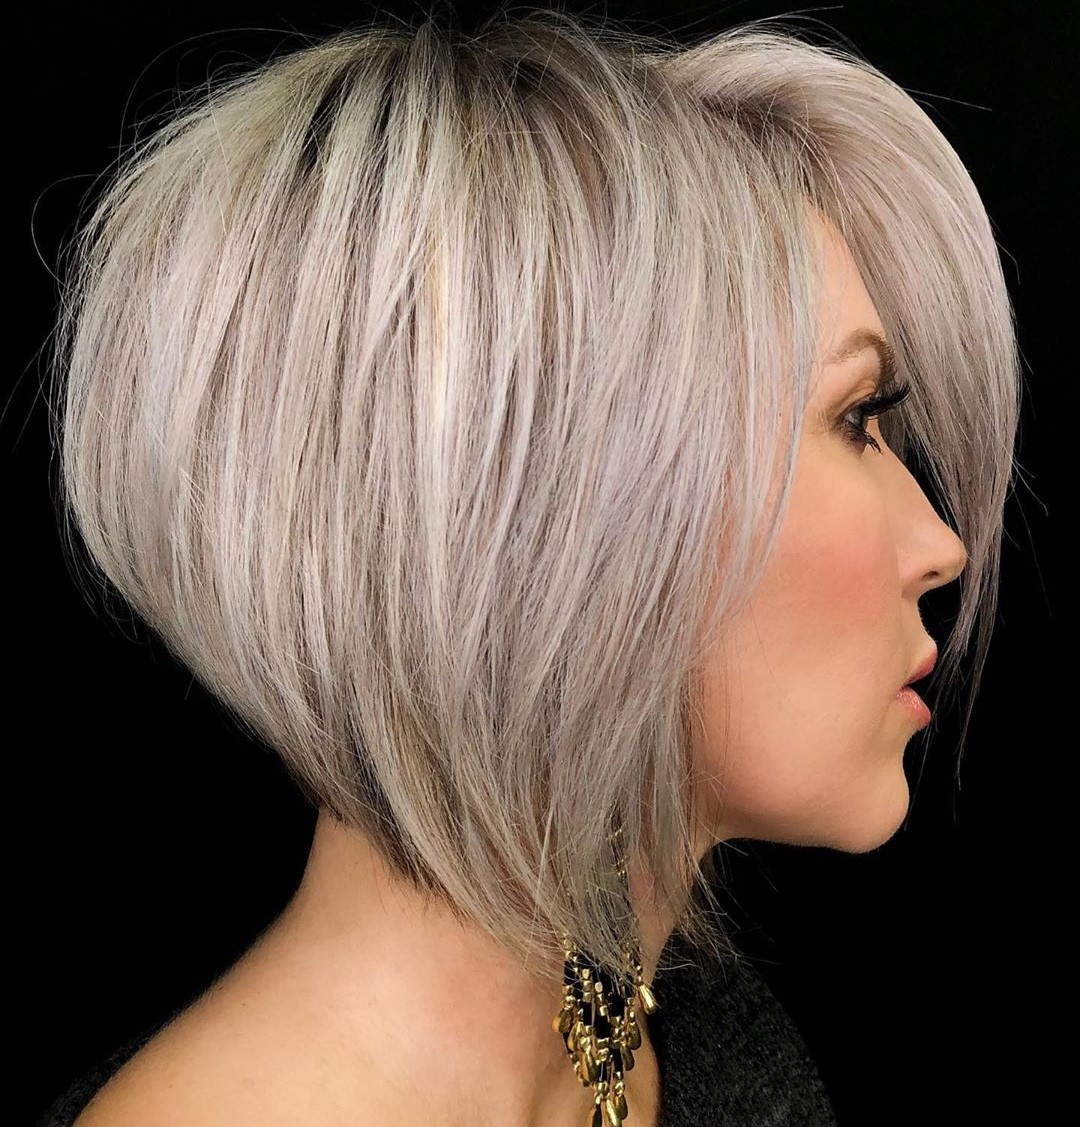 Silver Hairstyle with a Lilac Tint